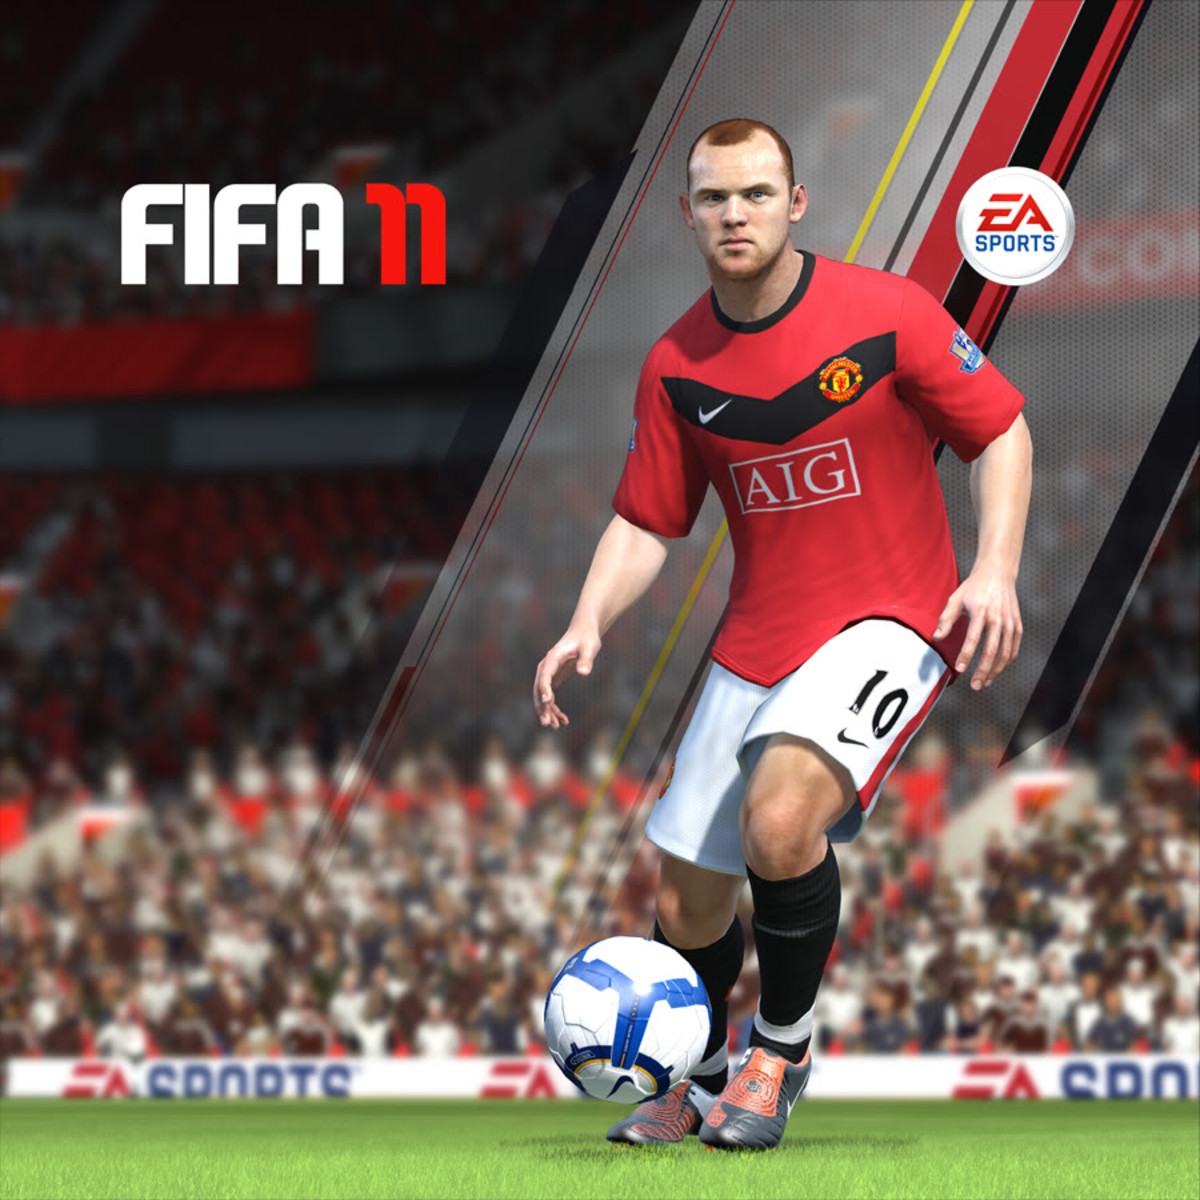 Fifa 11 ultimate team. How do you build your team? (Includes trailer)